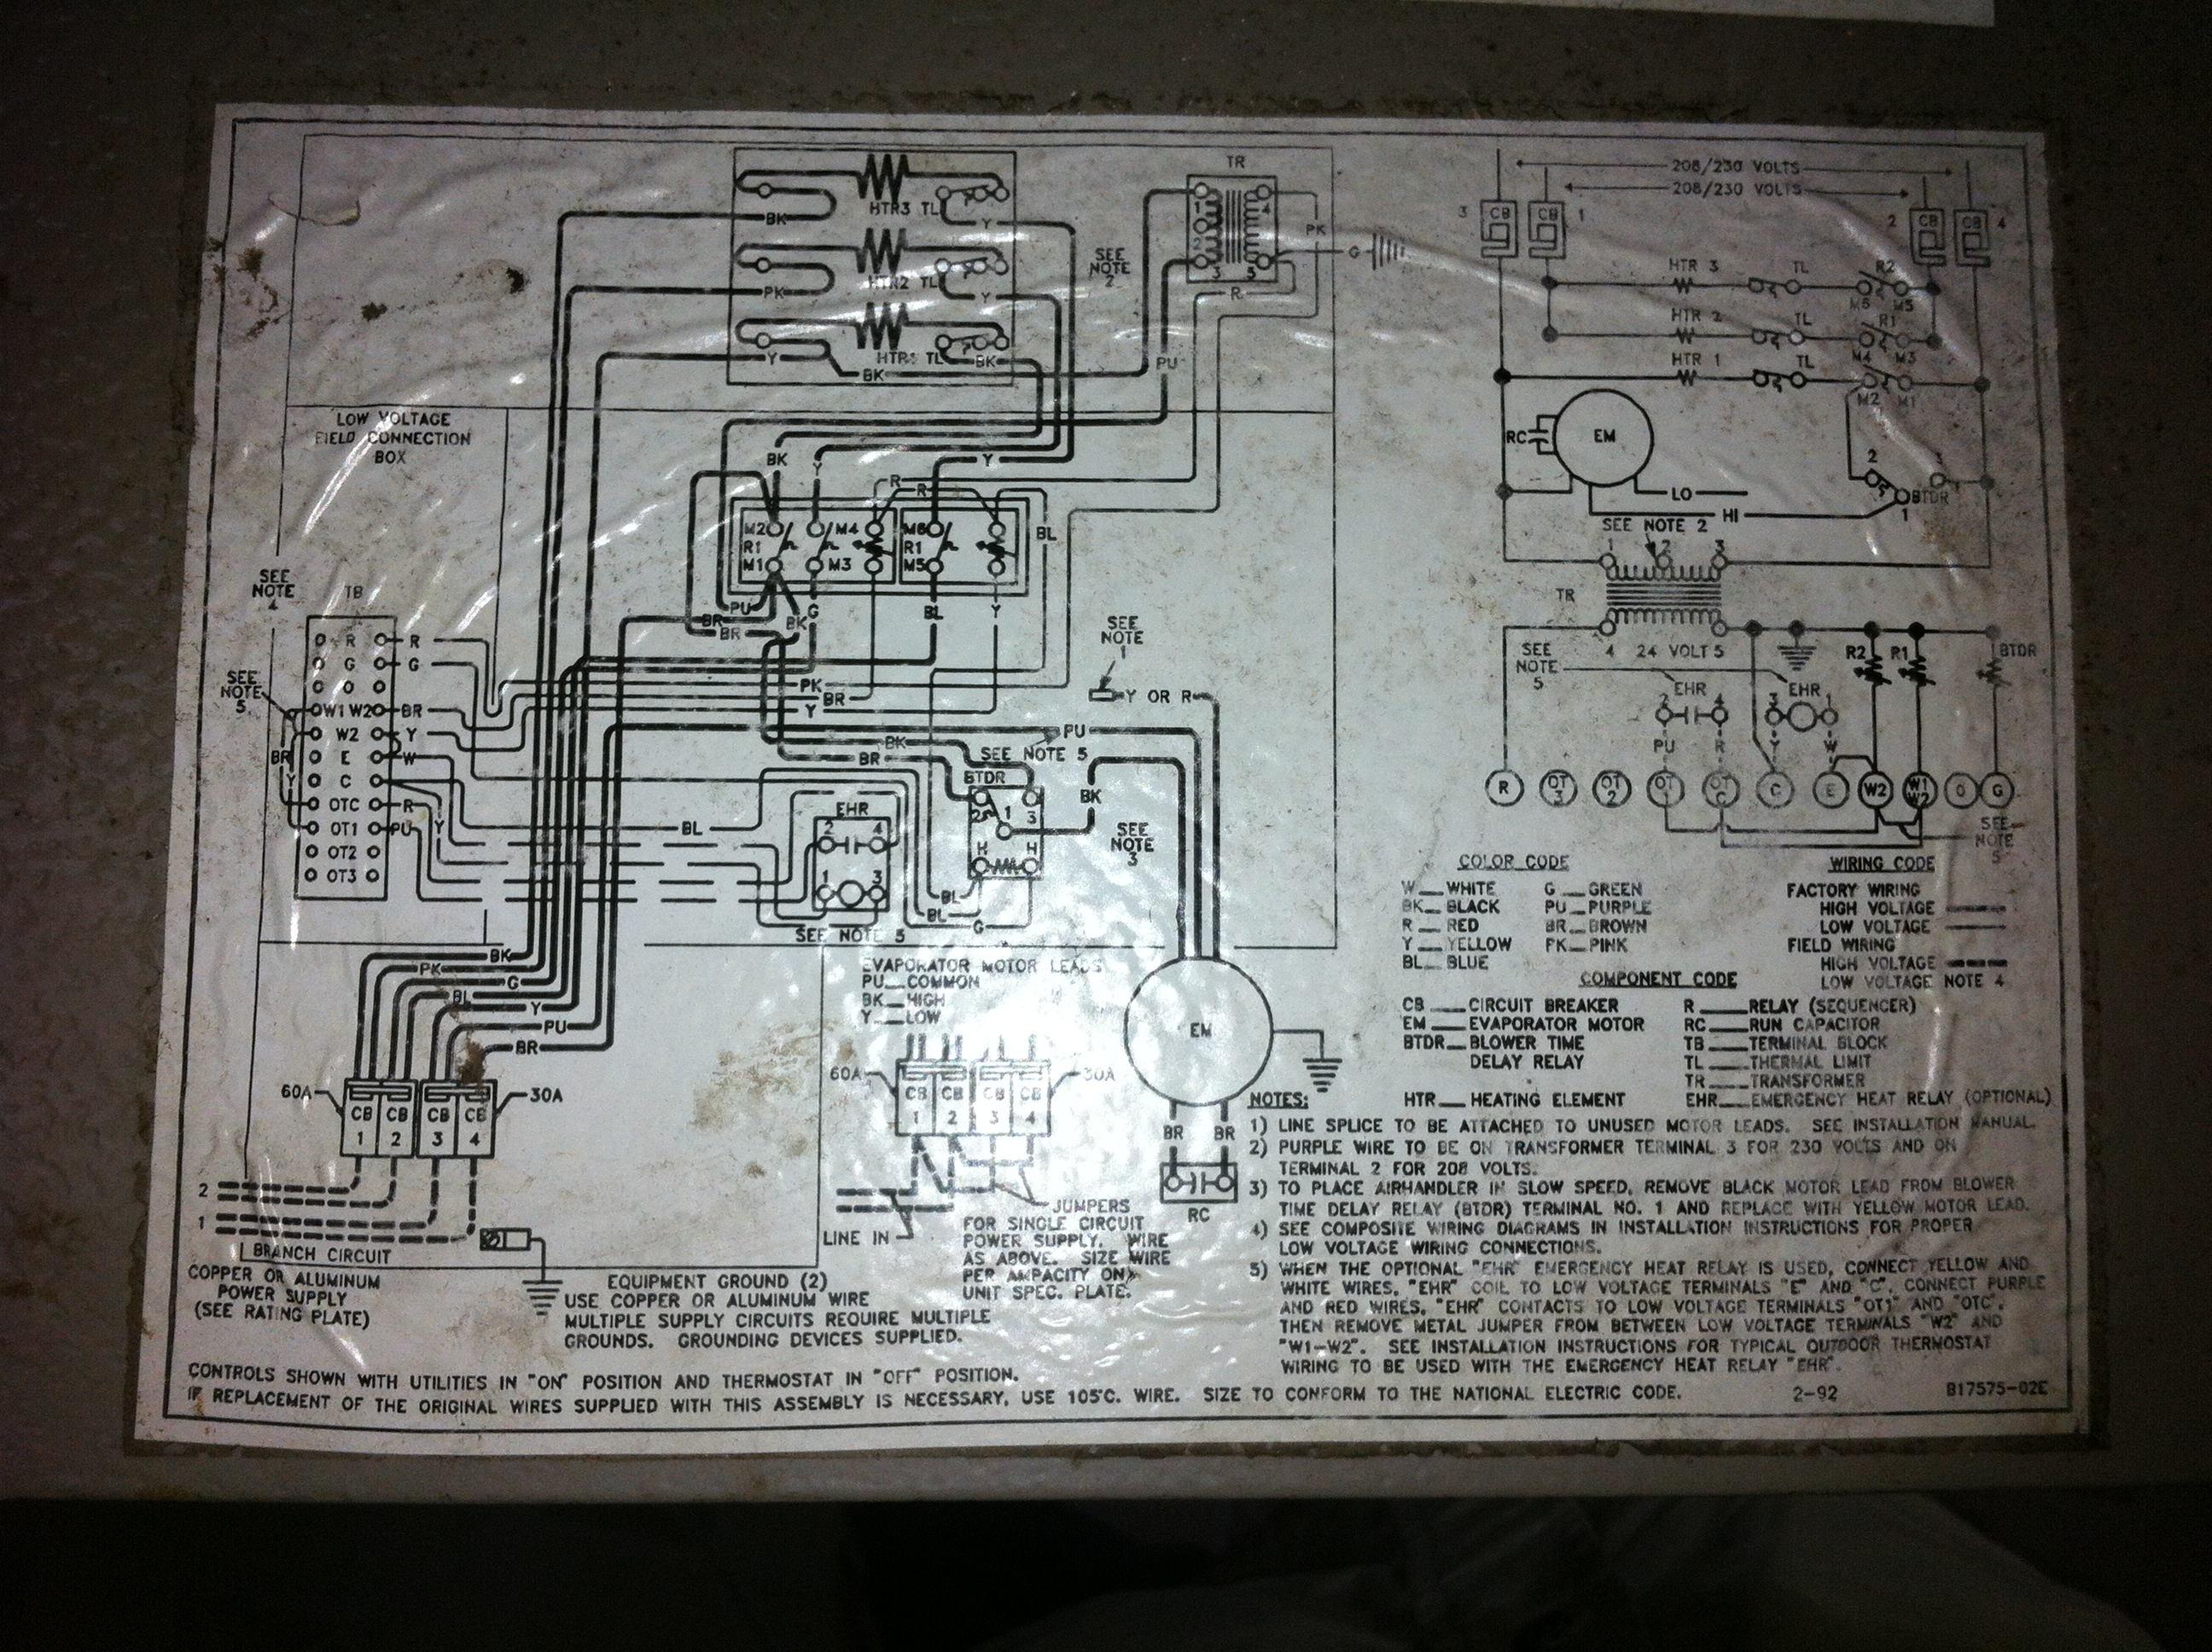 Goodman sequencer wiring diagram